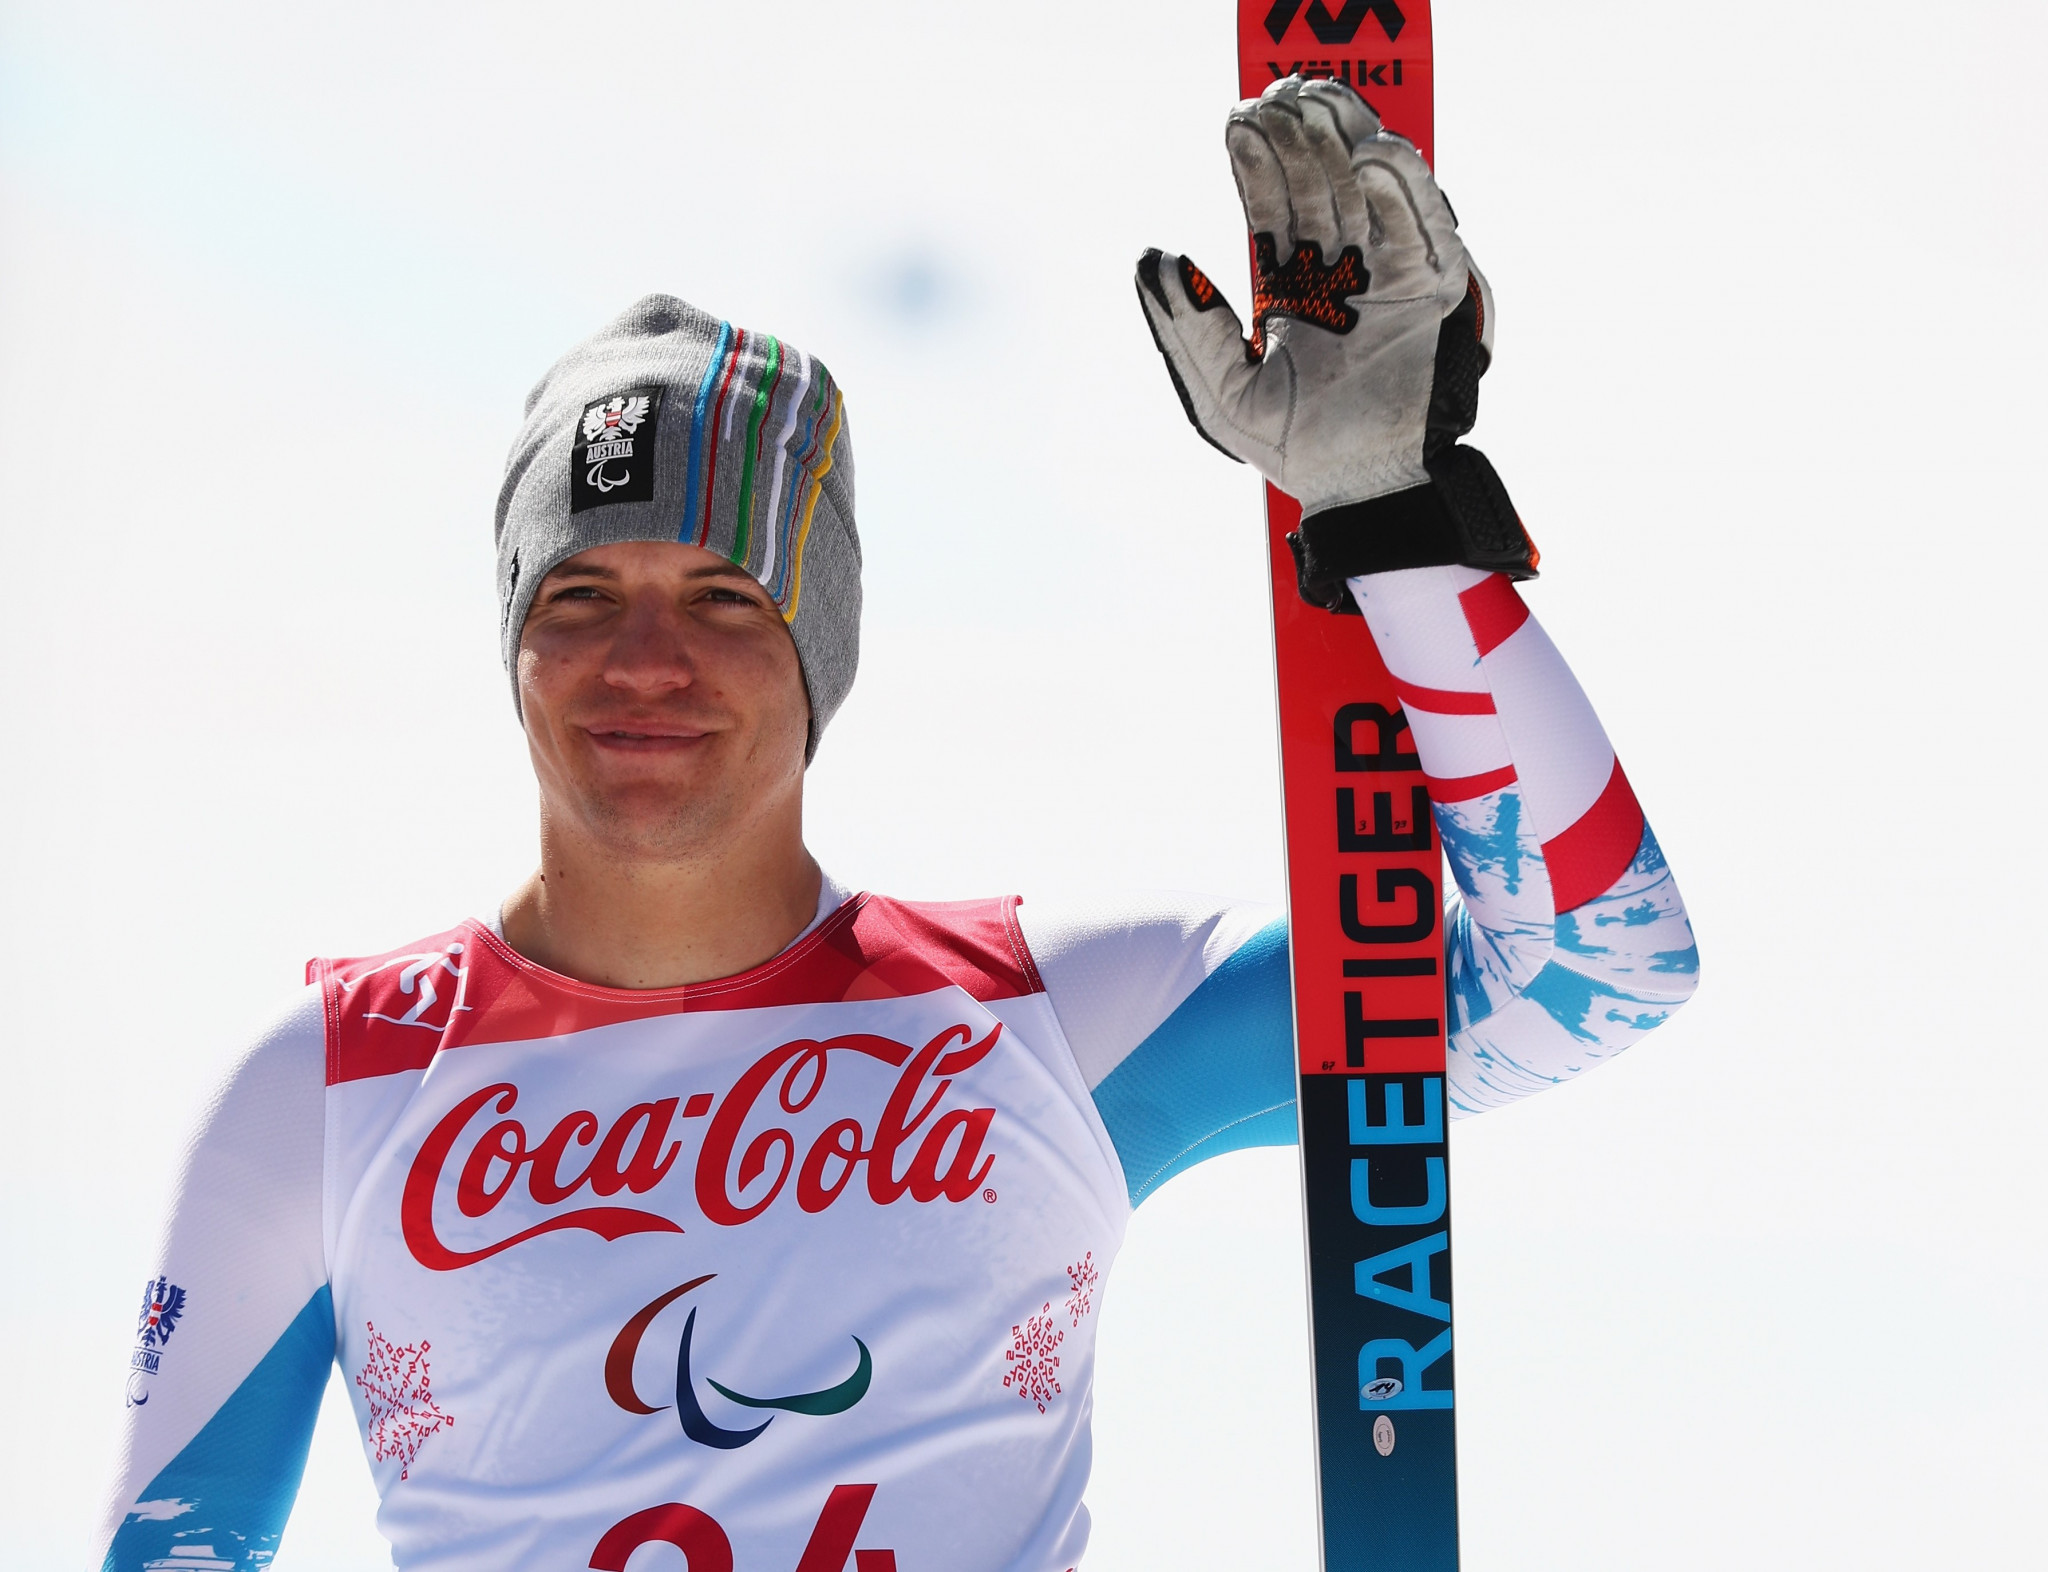 Salcher and Aigner win top prizes at Austria's Athlete of the Year awards